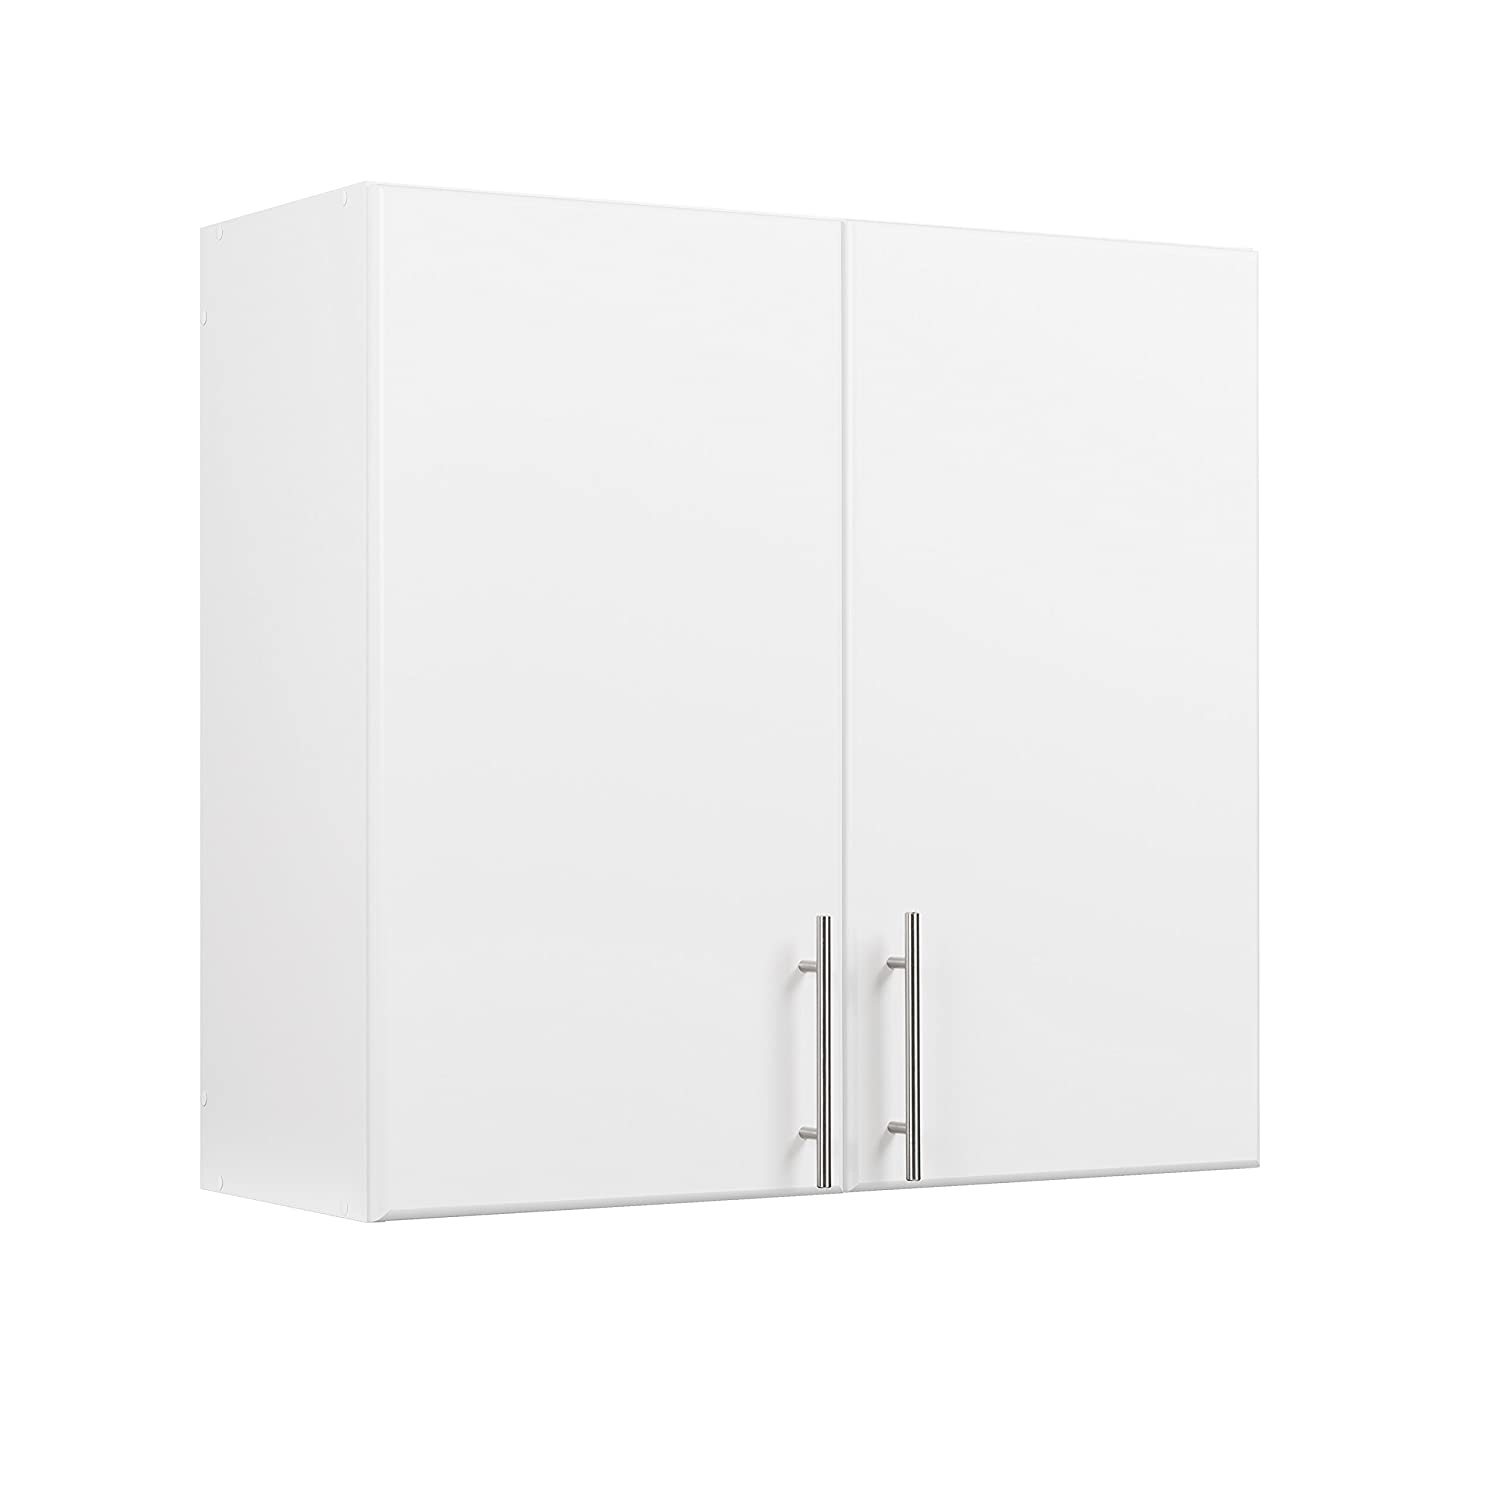 "Prepac WEW-3230 Elite Storage Cabinet 32"" Wall, White"